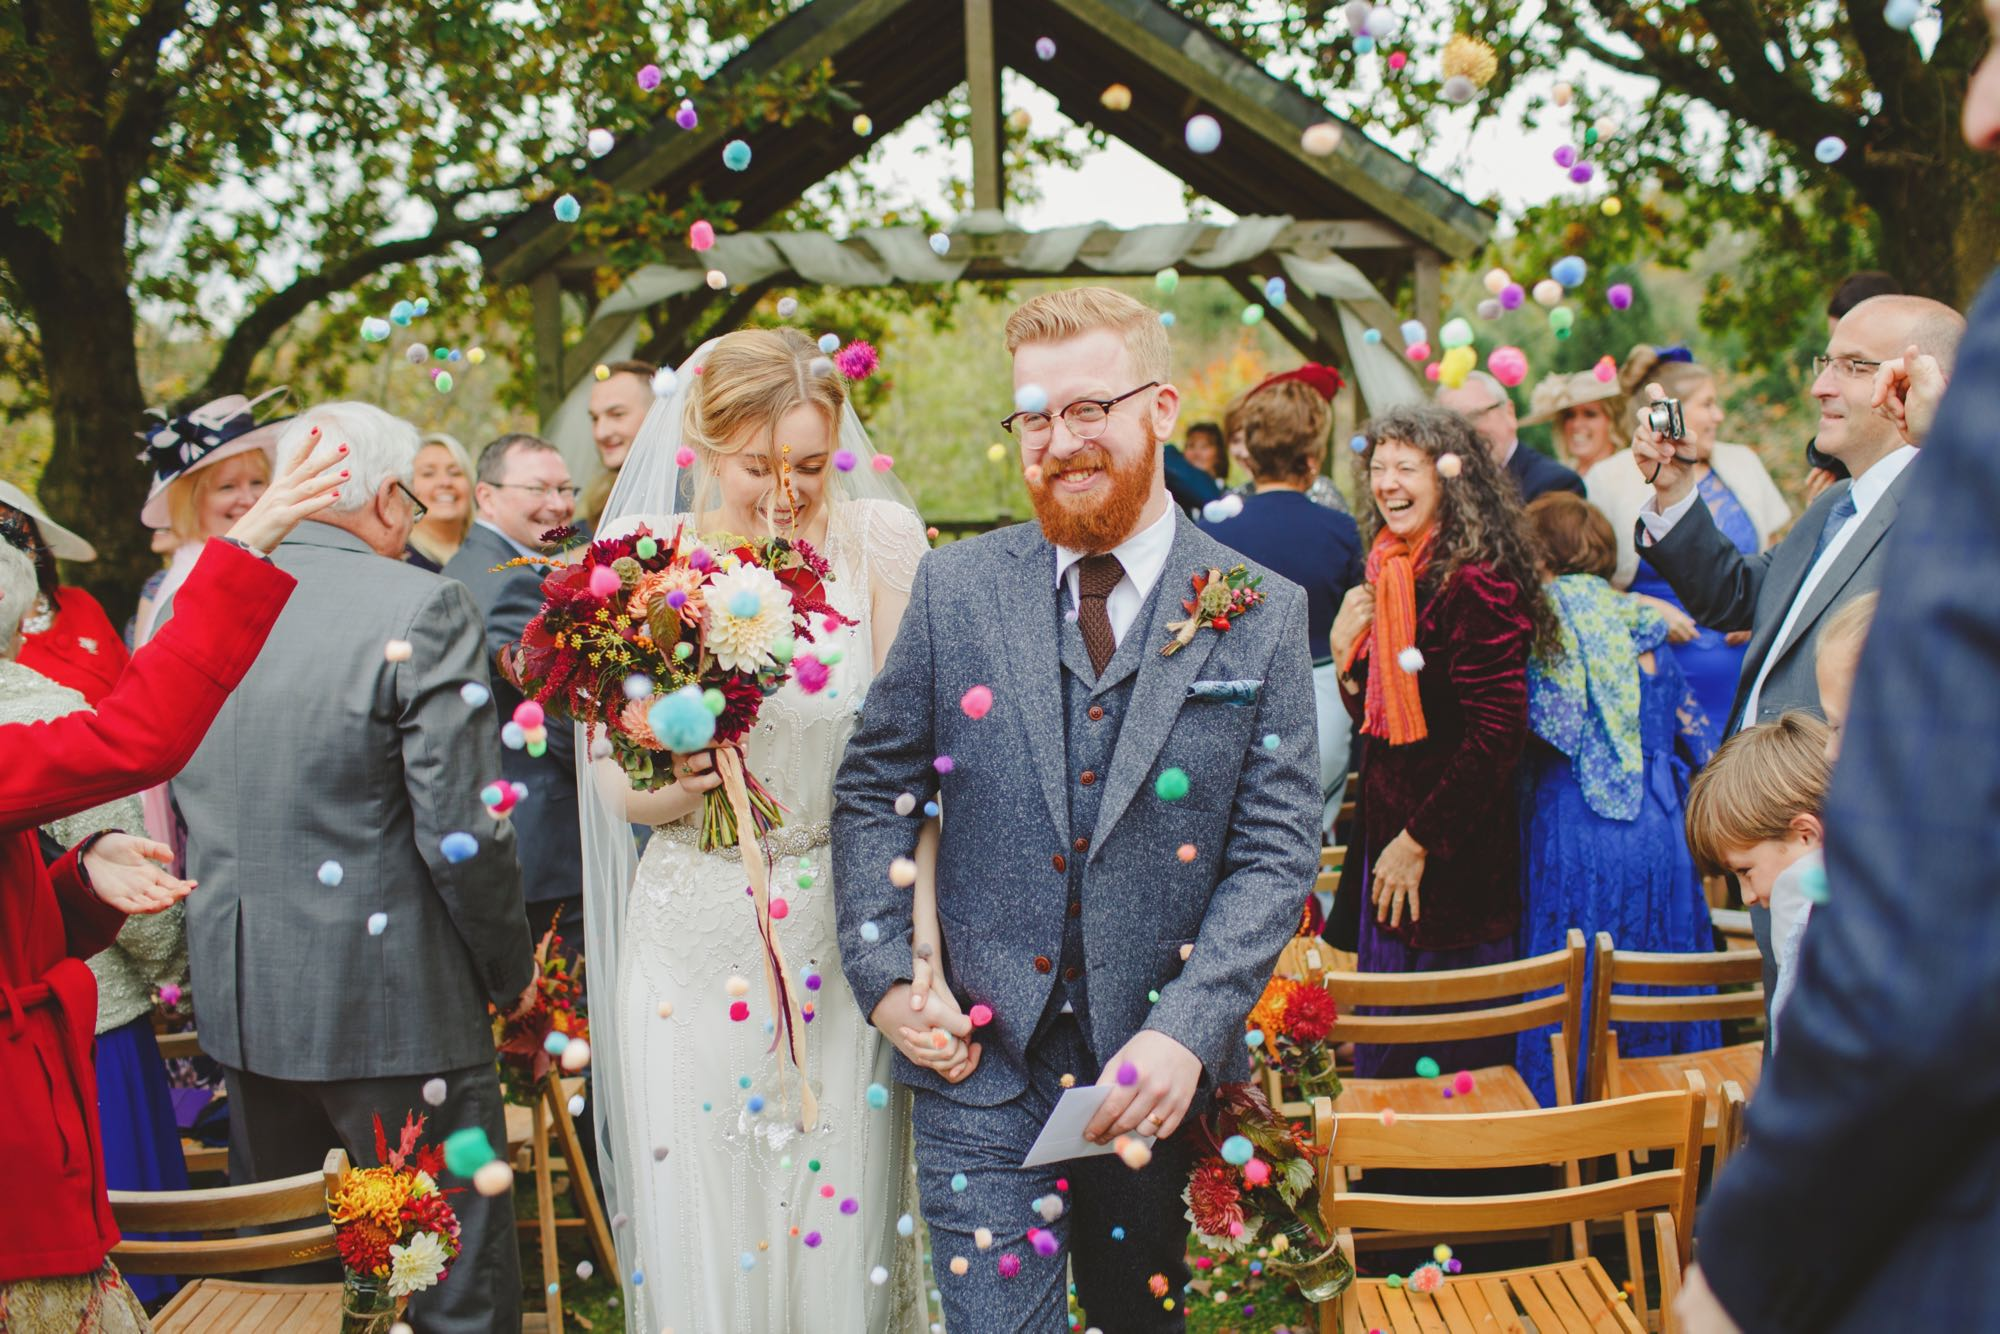 Newly weds leaving the Oak Arbour. The arbour is a wooden structure with four corner posts supporting a pitched roof. The front of the arbouris draped with cream voiles.This photo shows a couple just walking away from the Oak Arbour after their ceremony. Their guests are thowing pompom confetti. The couple are in the foreground and the shot shows them from the knees up. They are holding hands and the groom is on the right, the bride on the left. The bride is wearing a white fitted dress with lace details and lace cap sleeves. She has dark blond hair she is wearing. The bride is wearing a veil. In her left hand she is holding a bouquet of autumn coloured flowers: red, golds and browns flowers. The groom is wearing a grey, tweed, three-piece suit with a, white shirt and a brown tie. The groom has red hair, glasses and a beard. The couple are holding hands and the bride is looking down and smiling and the groom is looking off to his left and also smiling. You can see some guests around them. The guests are looking mostly at the couple but some have their backs to the couple. There are rows of chairs set out in front of the arbour but the guests are standing. You can see the registrar standing in the background under the arbour..